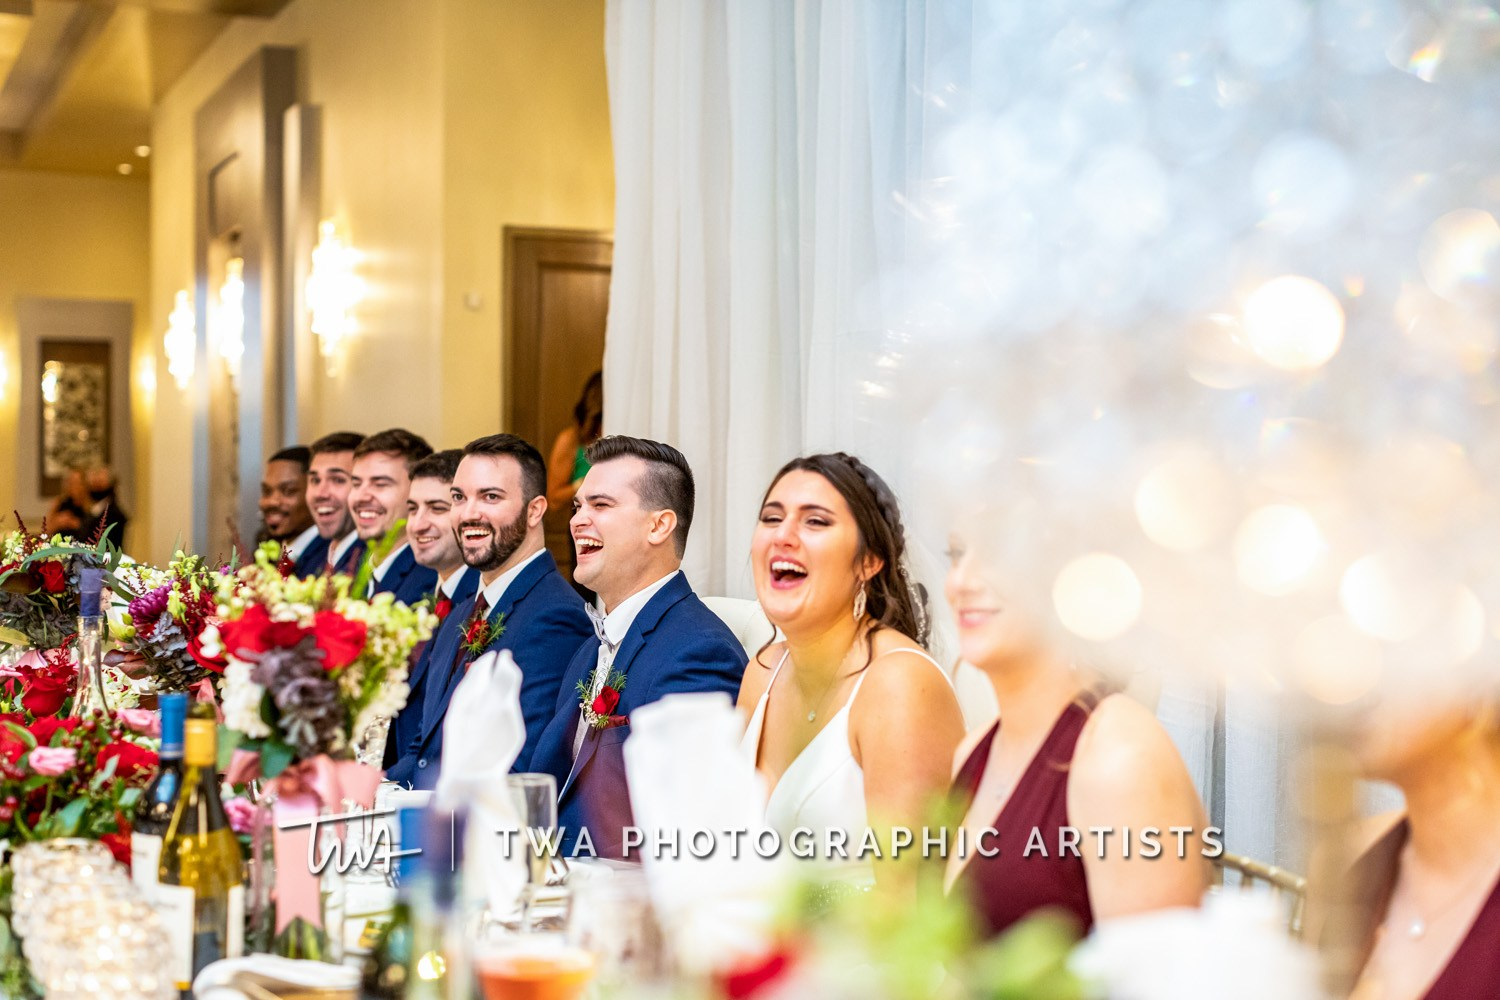 Chicago-Wedding-Photographer-TWA-Photographic-Artists-Avante-Banquets_Zickert_Quaas_MD_SG-0806